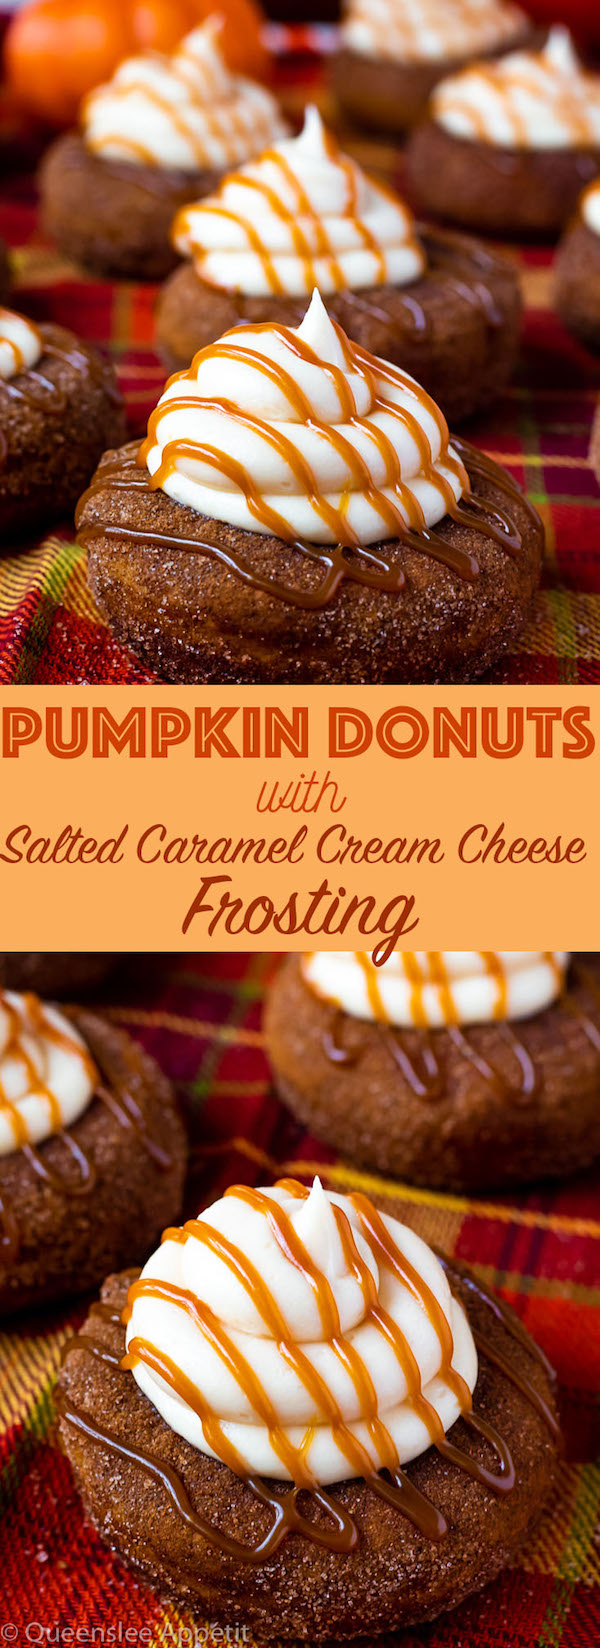 These moist Pumpkin Donuts are topped with a silky sweet and slightly tangy Salted Caramel Cream Cheese Frosting! They're super light and fluffy and full of pumpkin and fall spice flavours.